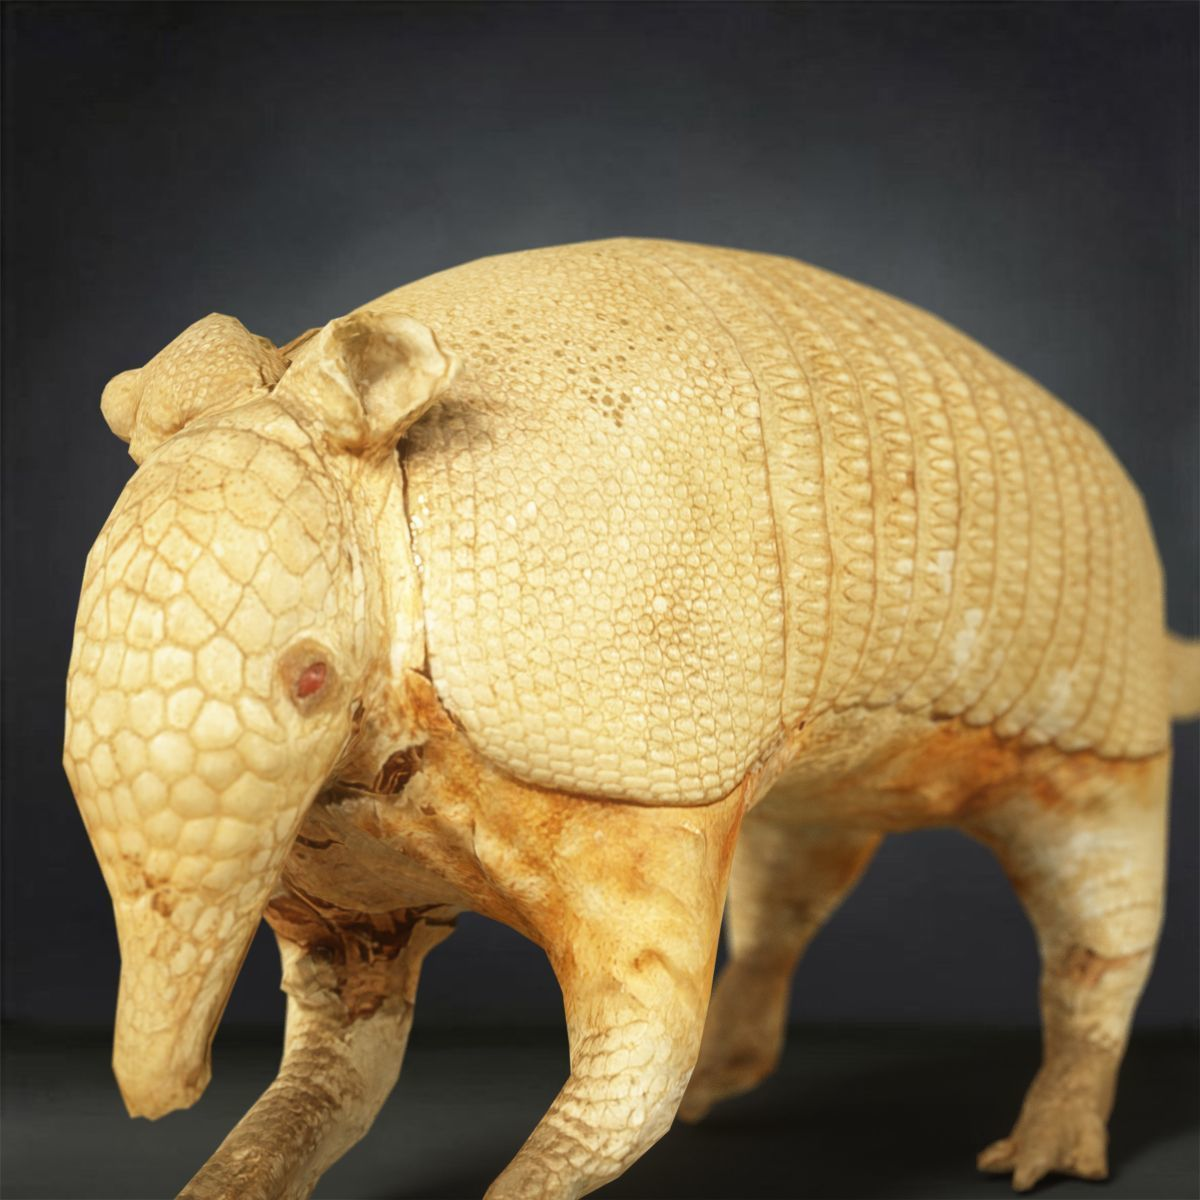 Pin by CGTrader on 3D Animals Poses, Mammals, Animals